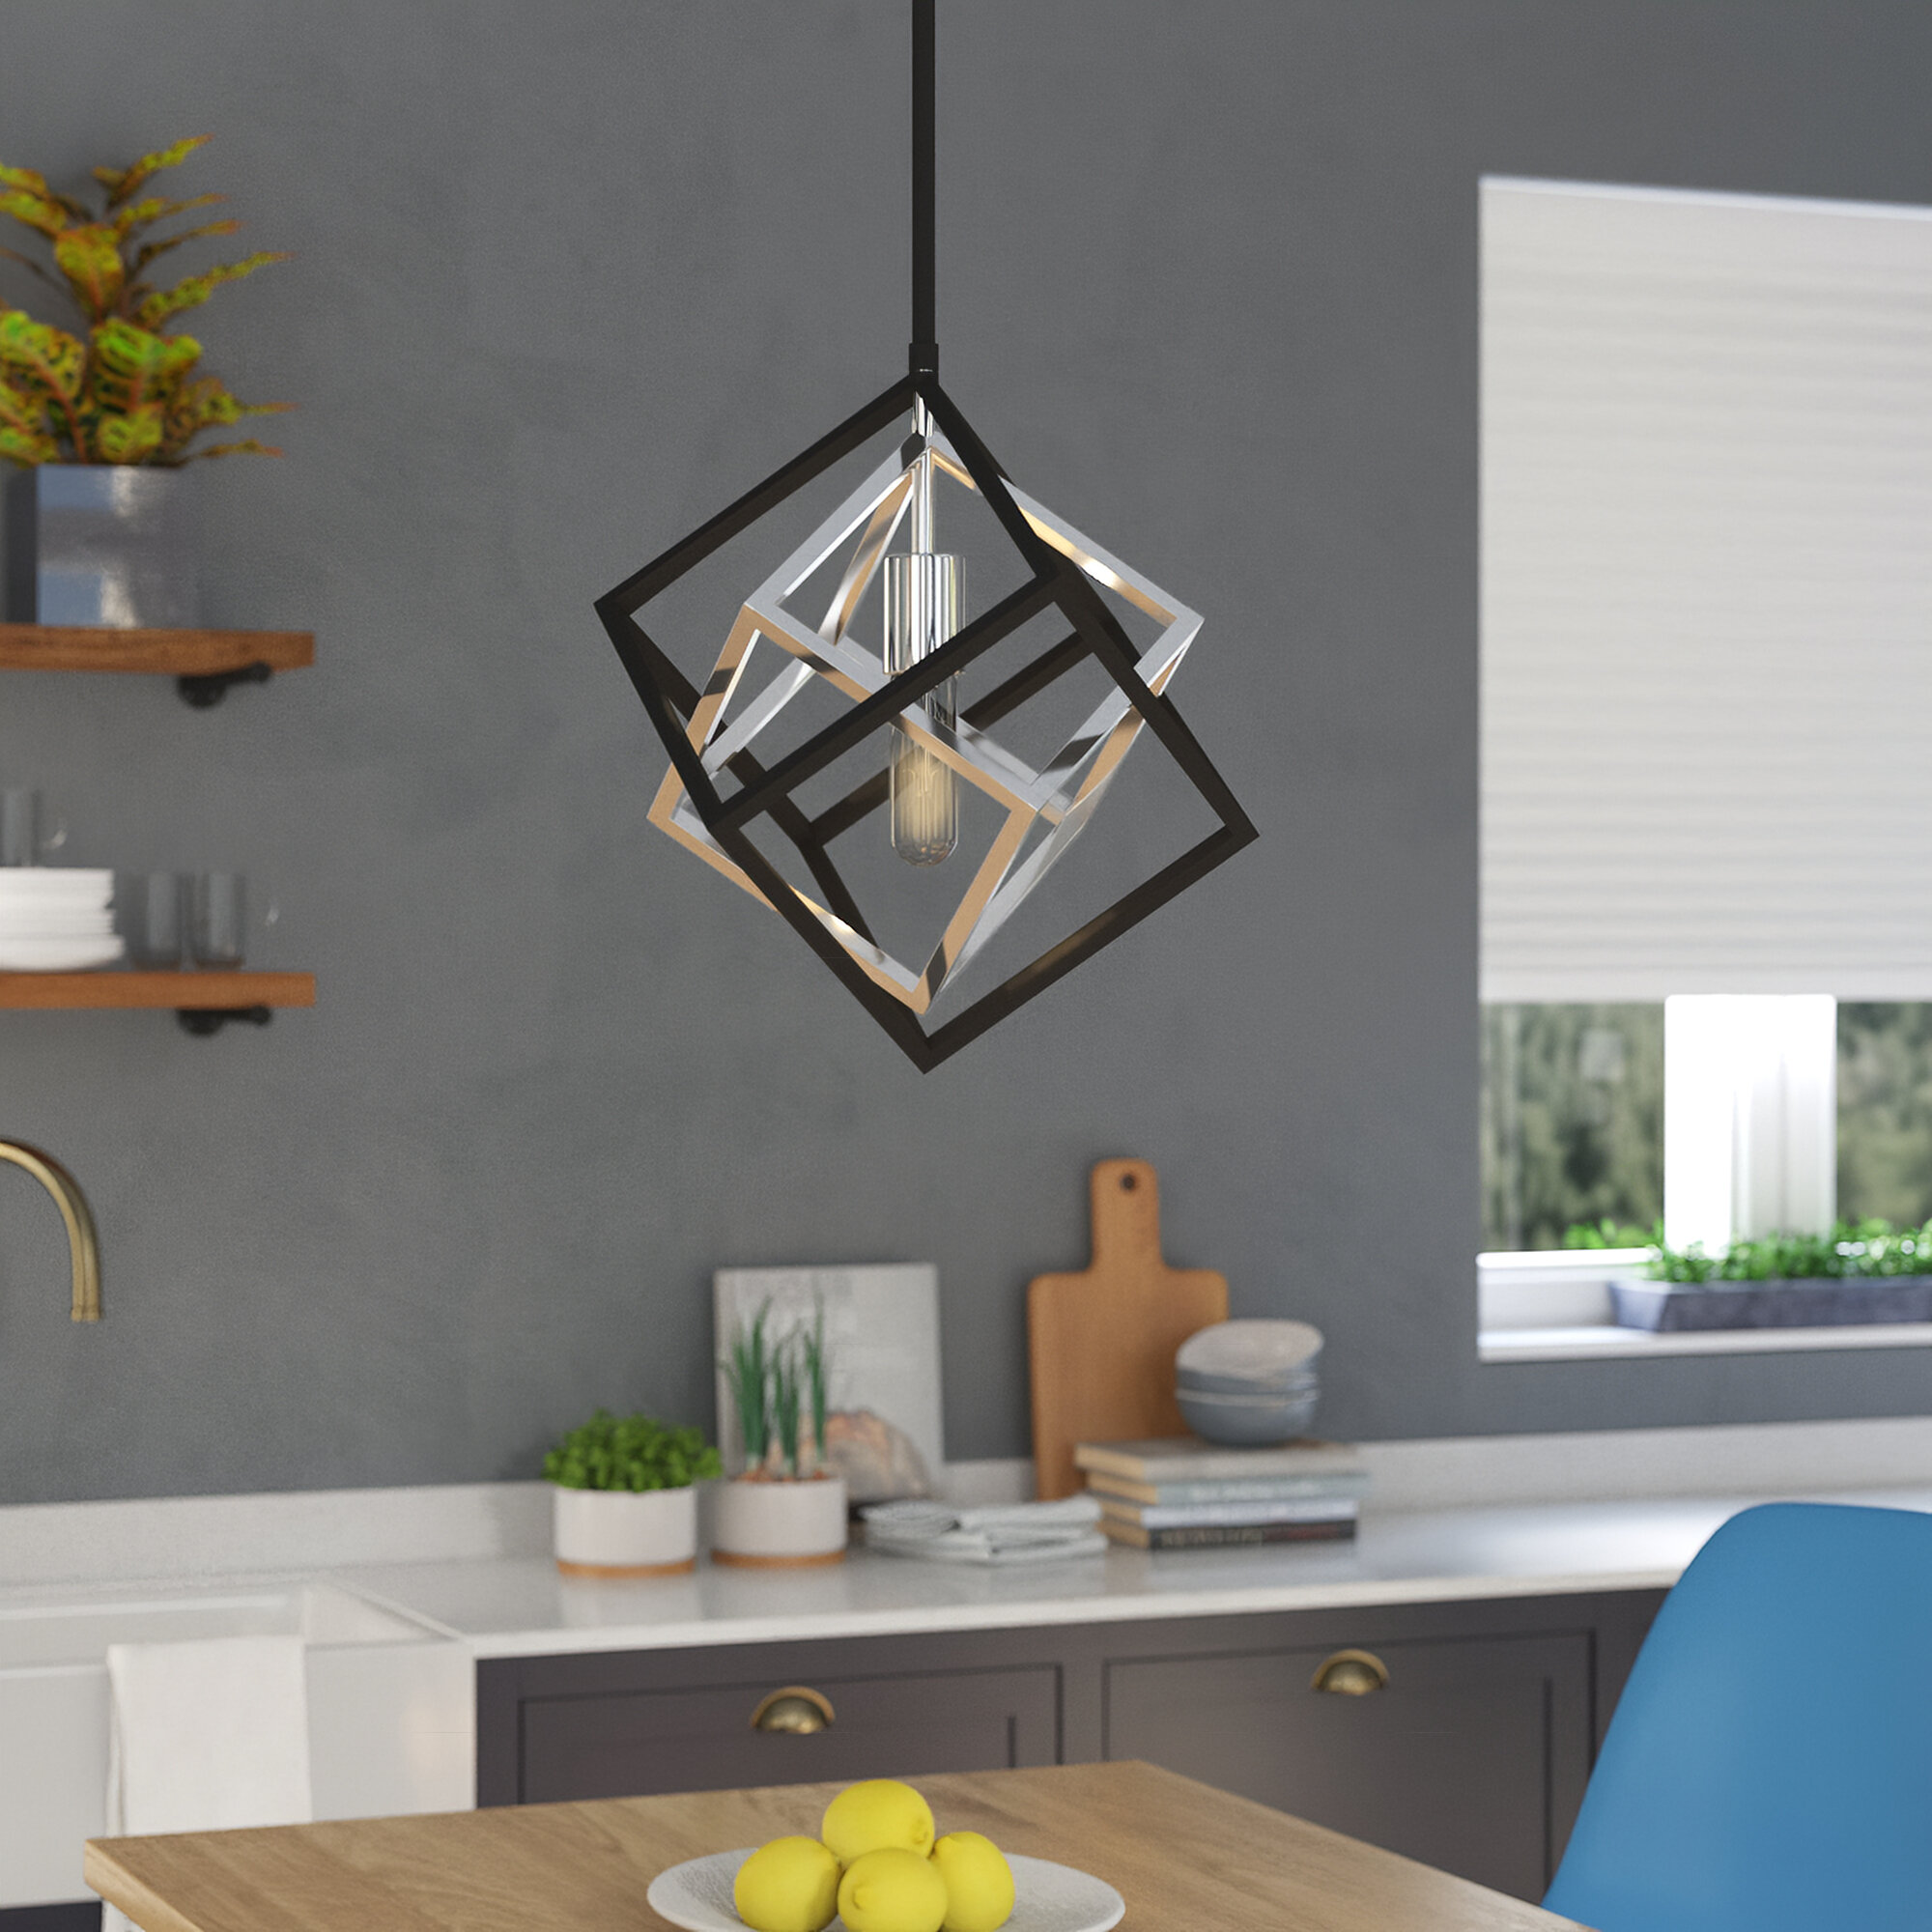 Chrome Geometric Pendant Lighting You Ll Love In 2021 Wayfair